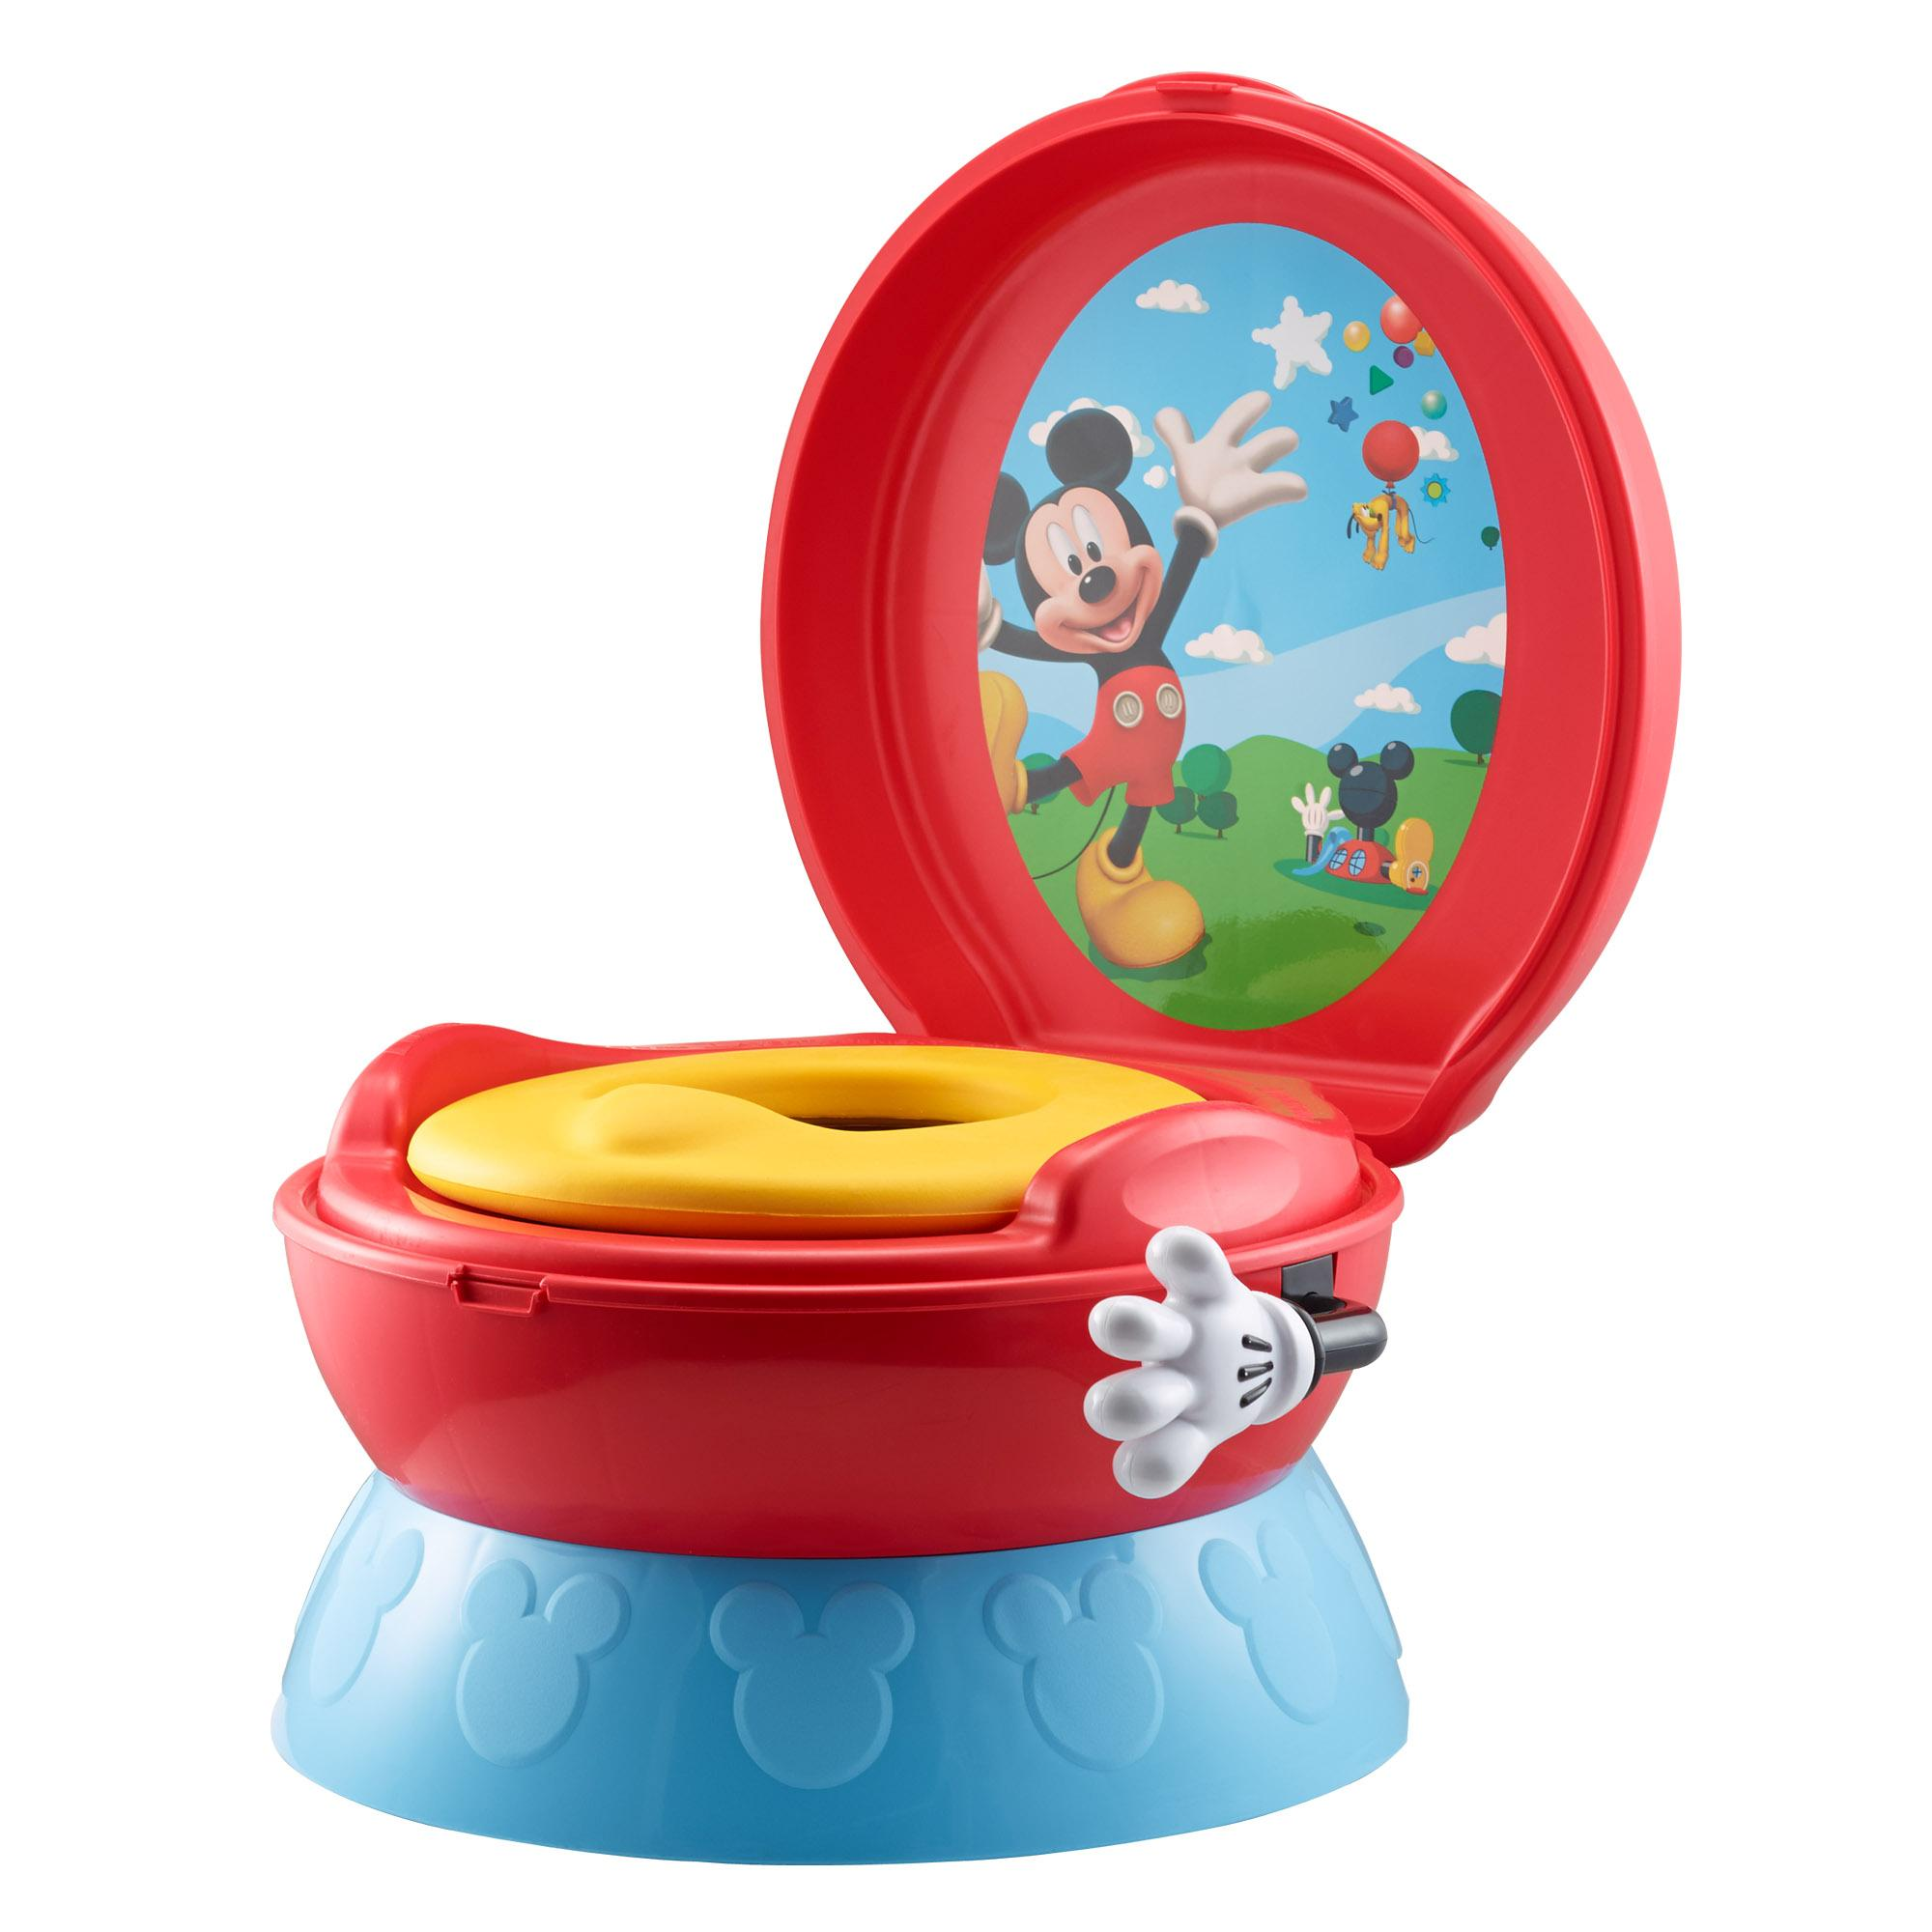 The First Years 3 In 1 Potty System Mickey Mouse New Ebay